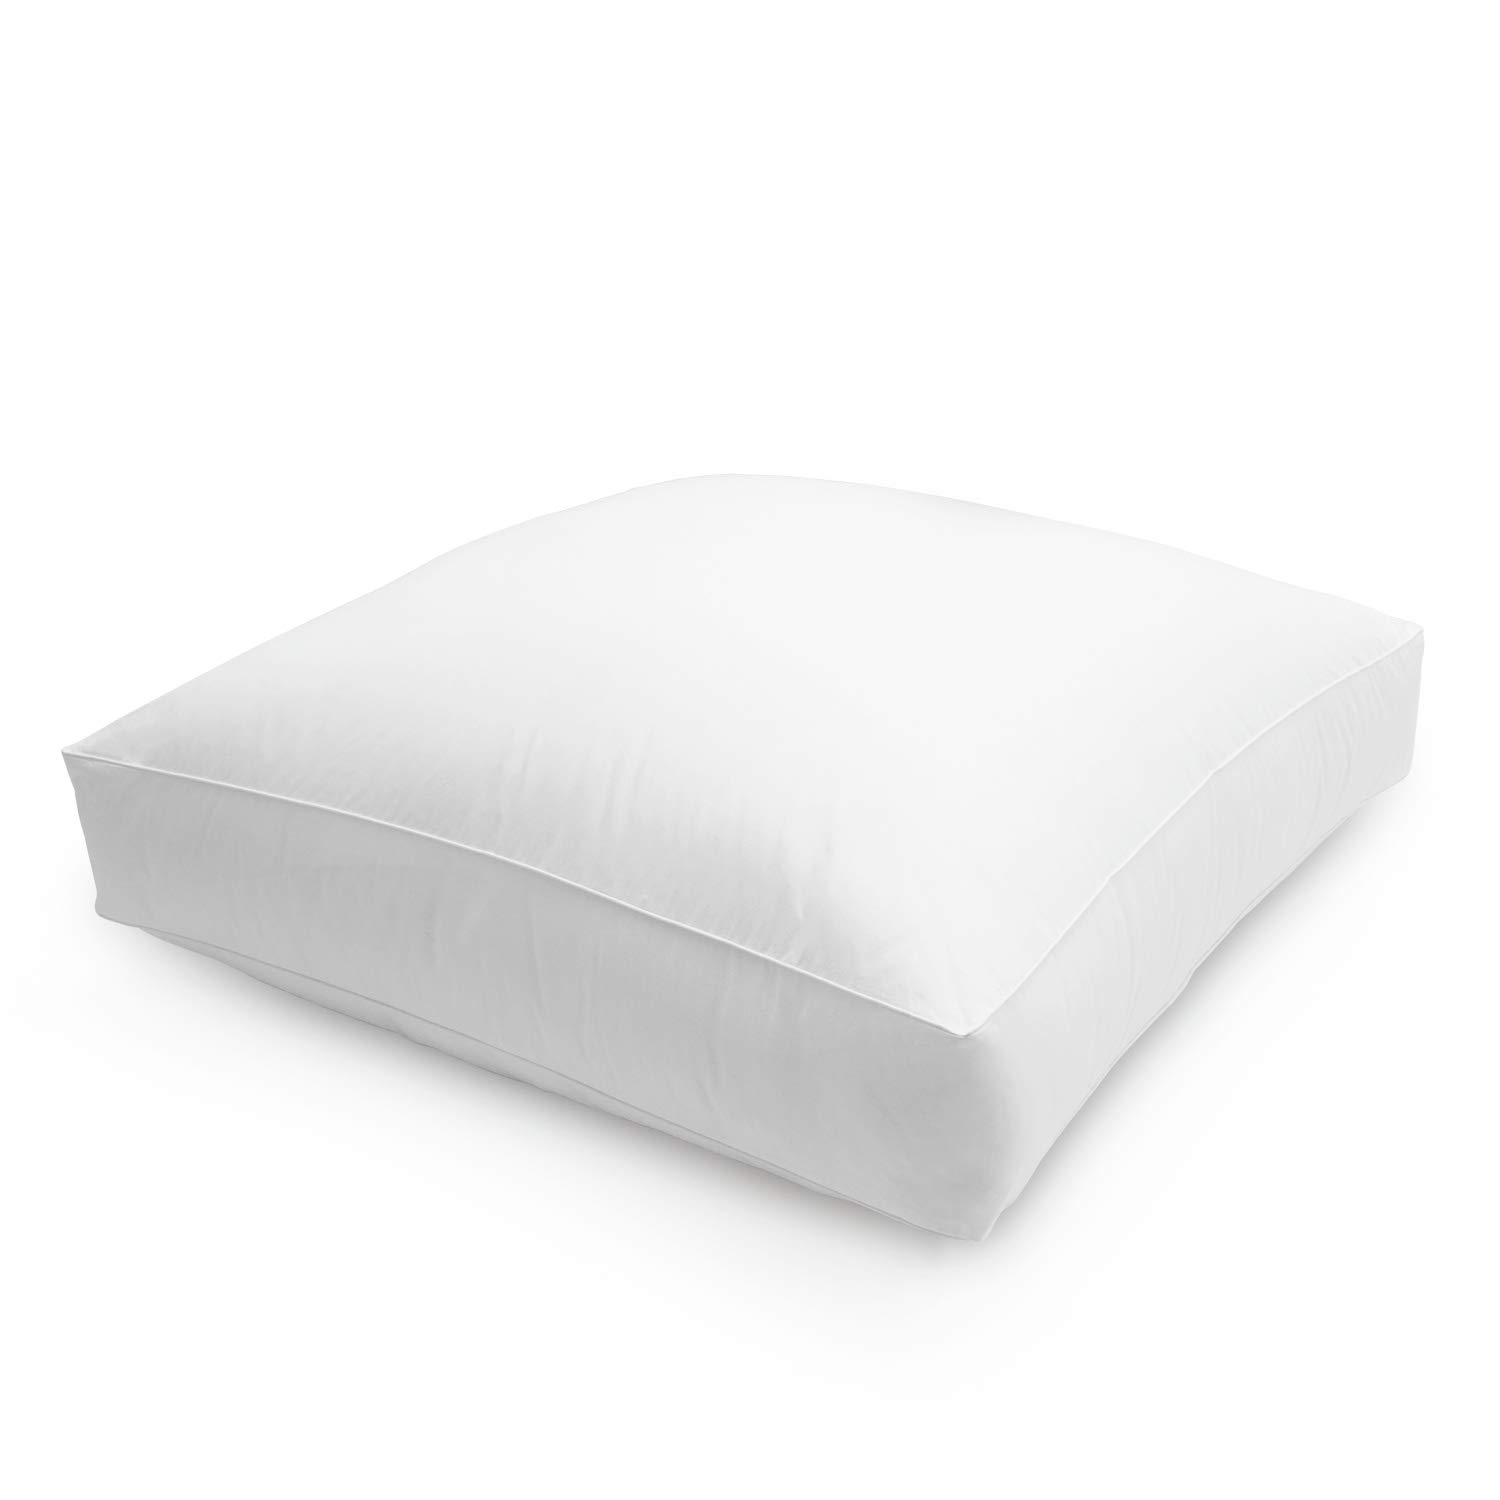 DOWNLITE Extra Large Down and Feather Floor Cushion - 36 Inch Square Dorm Floor Pillow